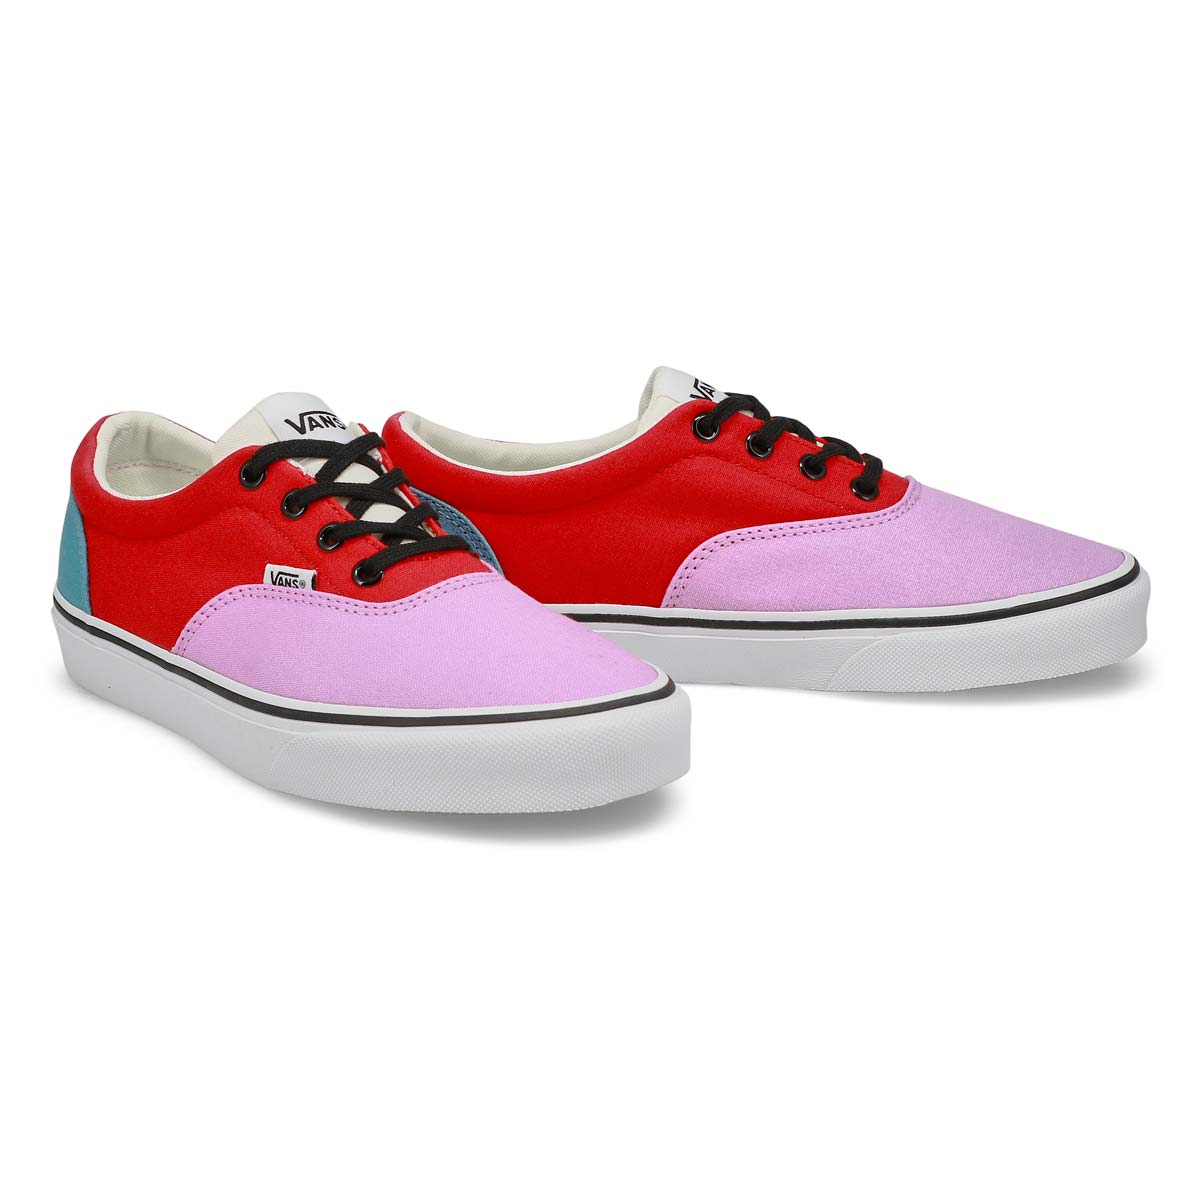 Women's Doheny Sneaker - Orchid/Red